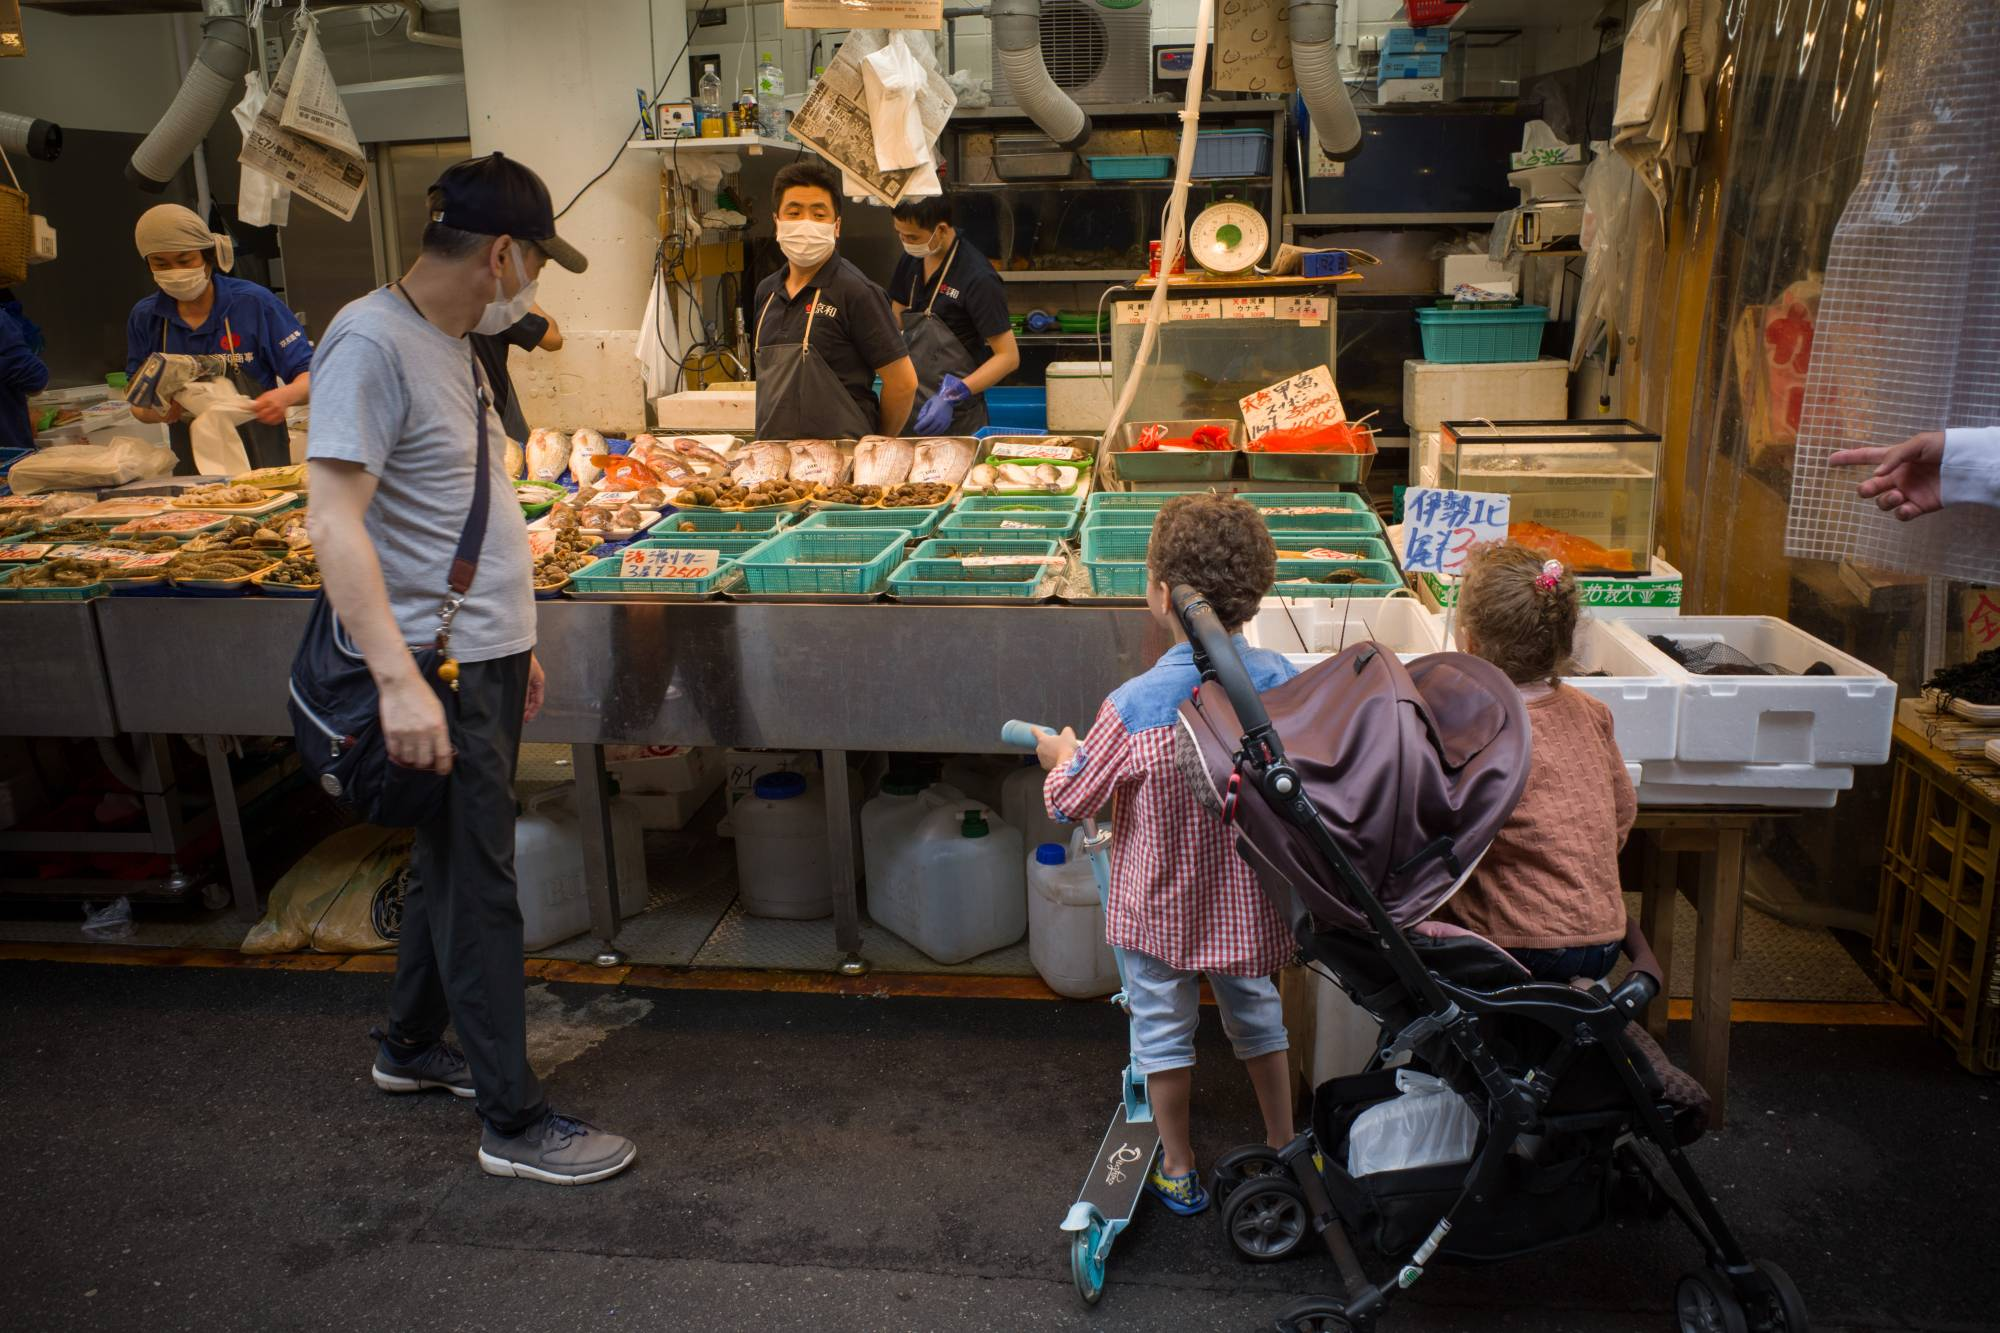 Children stop in front of a seafood stall at the Ameyoko market in Tokyo earlier this month.  | BLOOMBERG